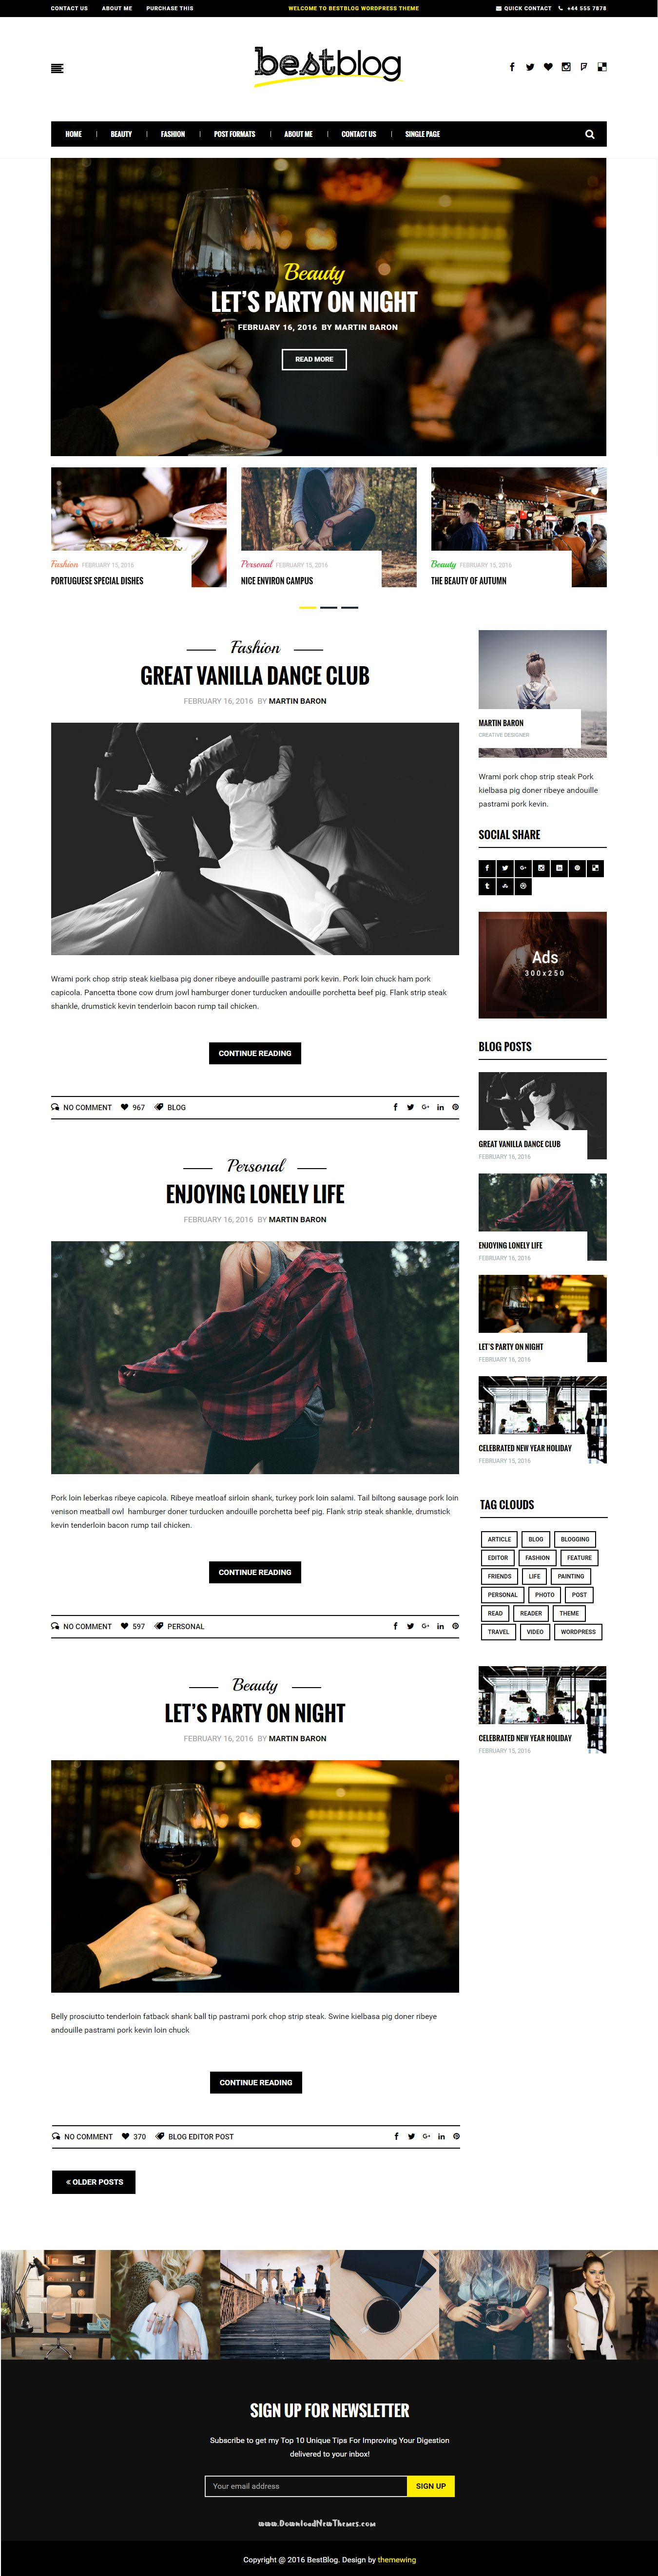 BestBlog - Responsive WordPress Blog Theme | Wordpress blog themes ...